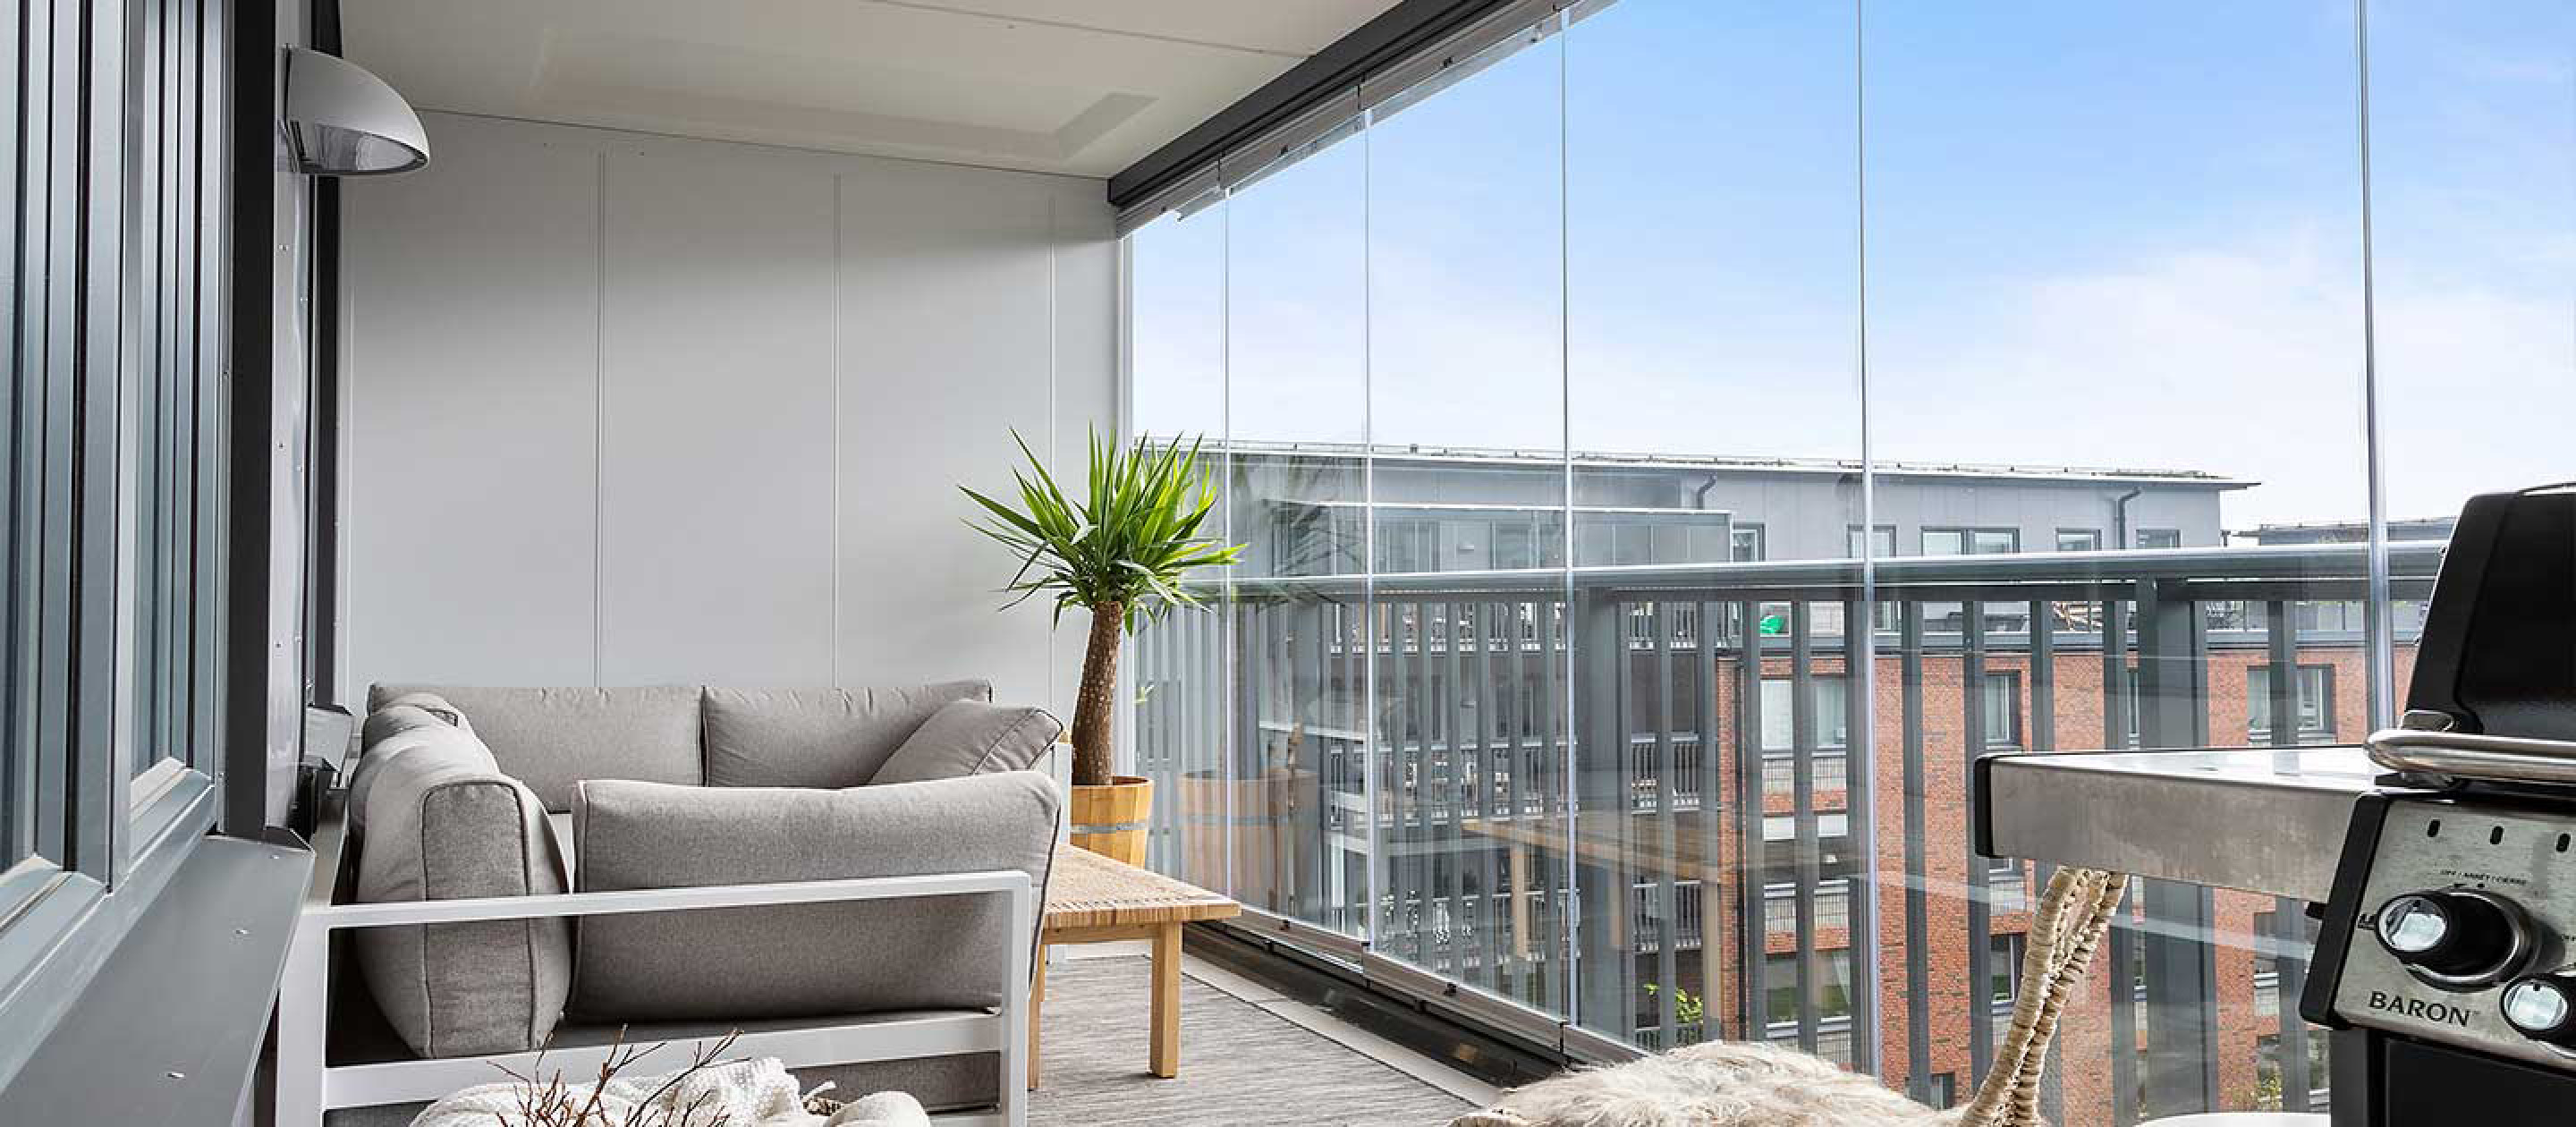 glass balcony, glass balcony façade, balcony façade, lumon glass balcony, lumon glass balcony façade, lumon, glass balcony delta, glass balcony surrey, glass balcony white rock, lumon façades, balcony glass,